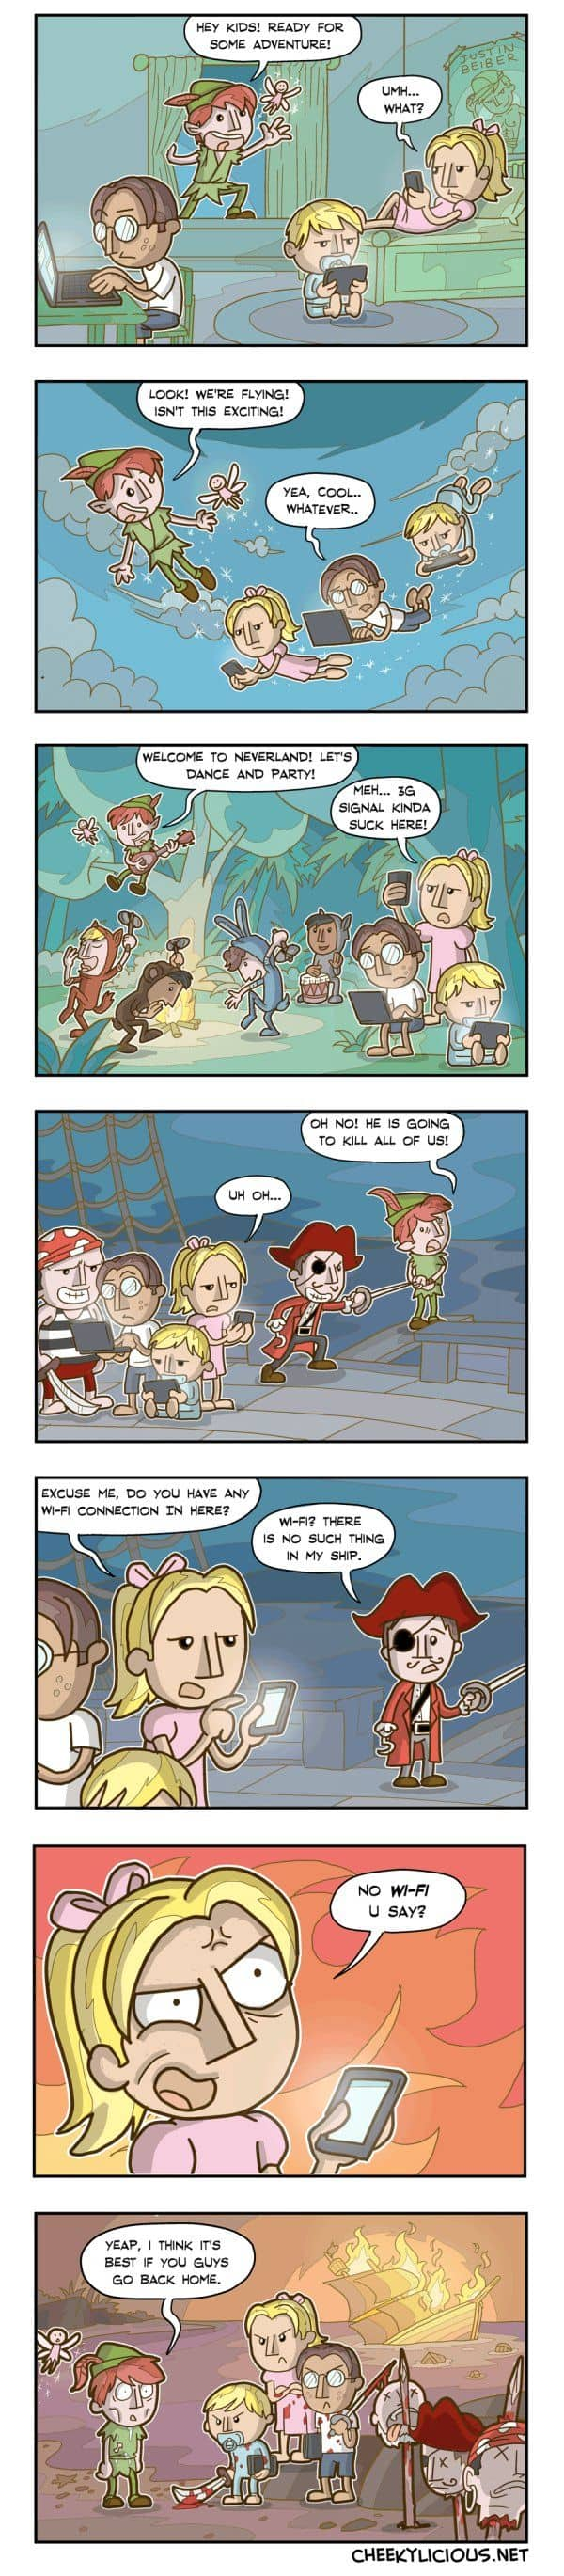 Peter Pan and Millennials